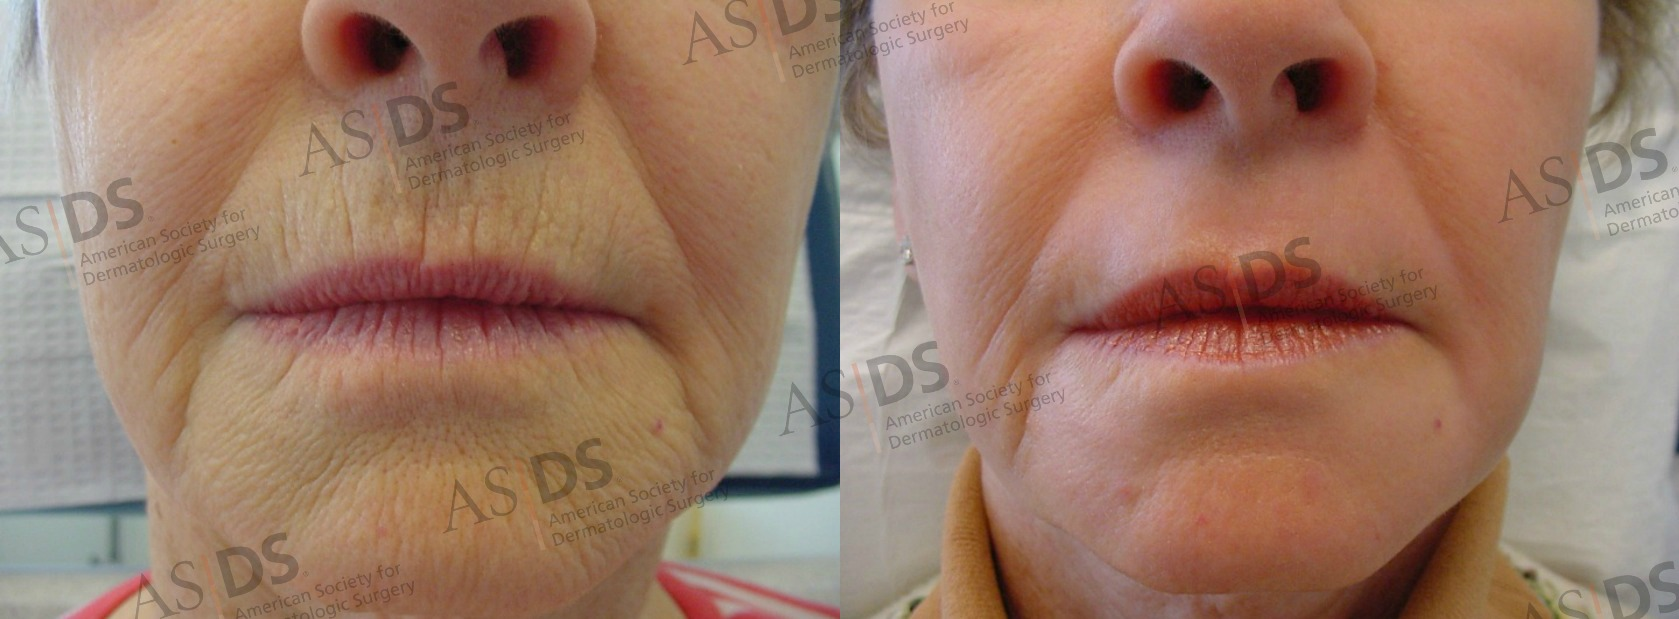 croton oil-phenol deep chemical peel - perioral lines-wrinkles